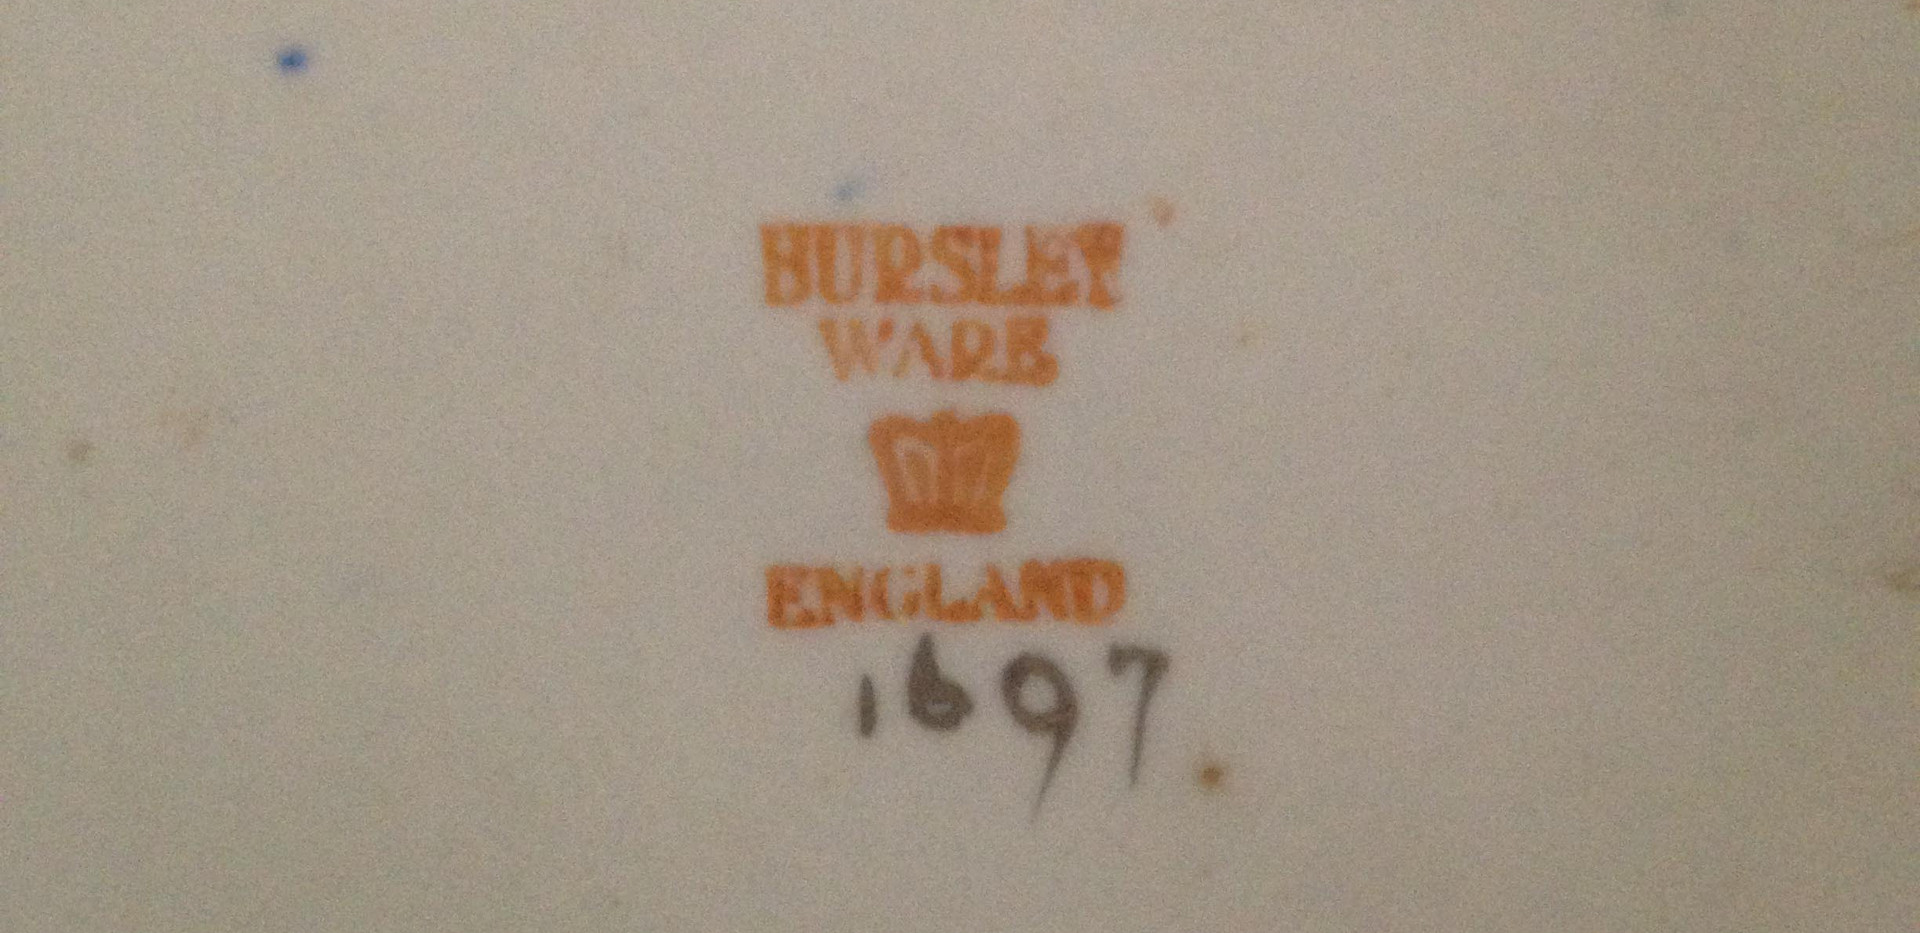 Bursley Ware Charger Factory Marks